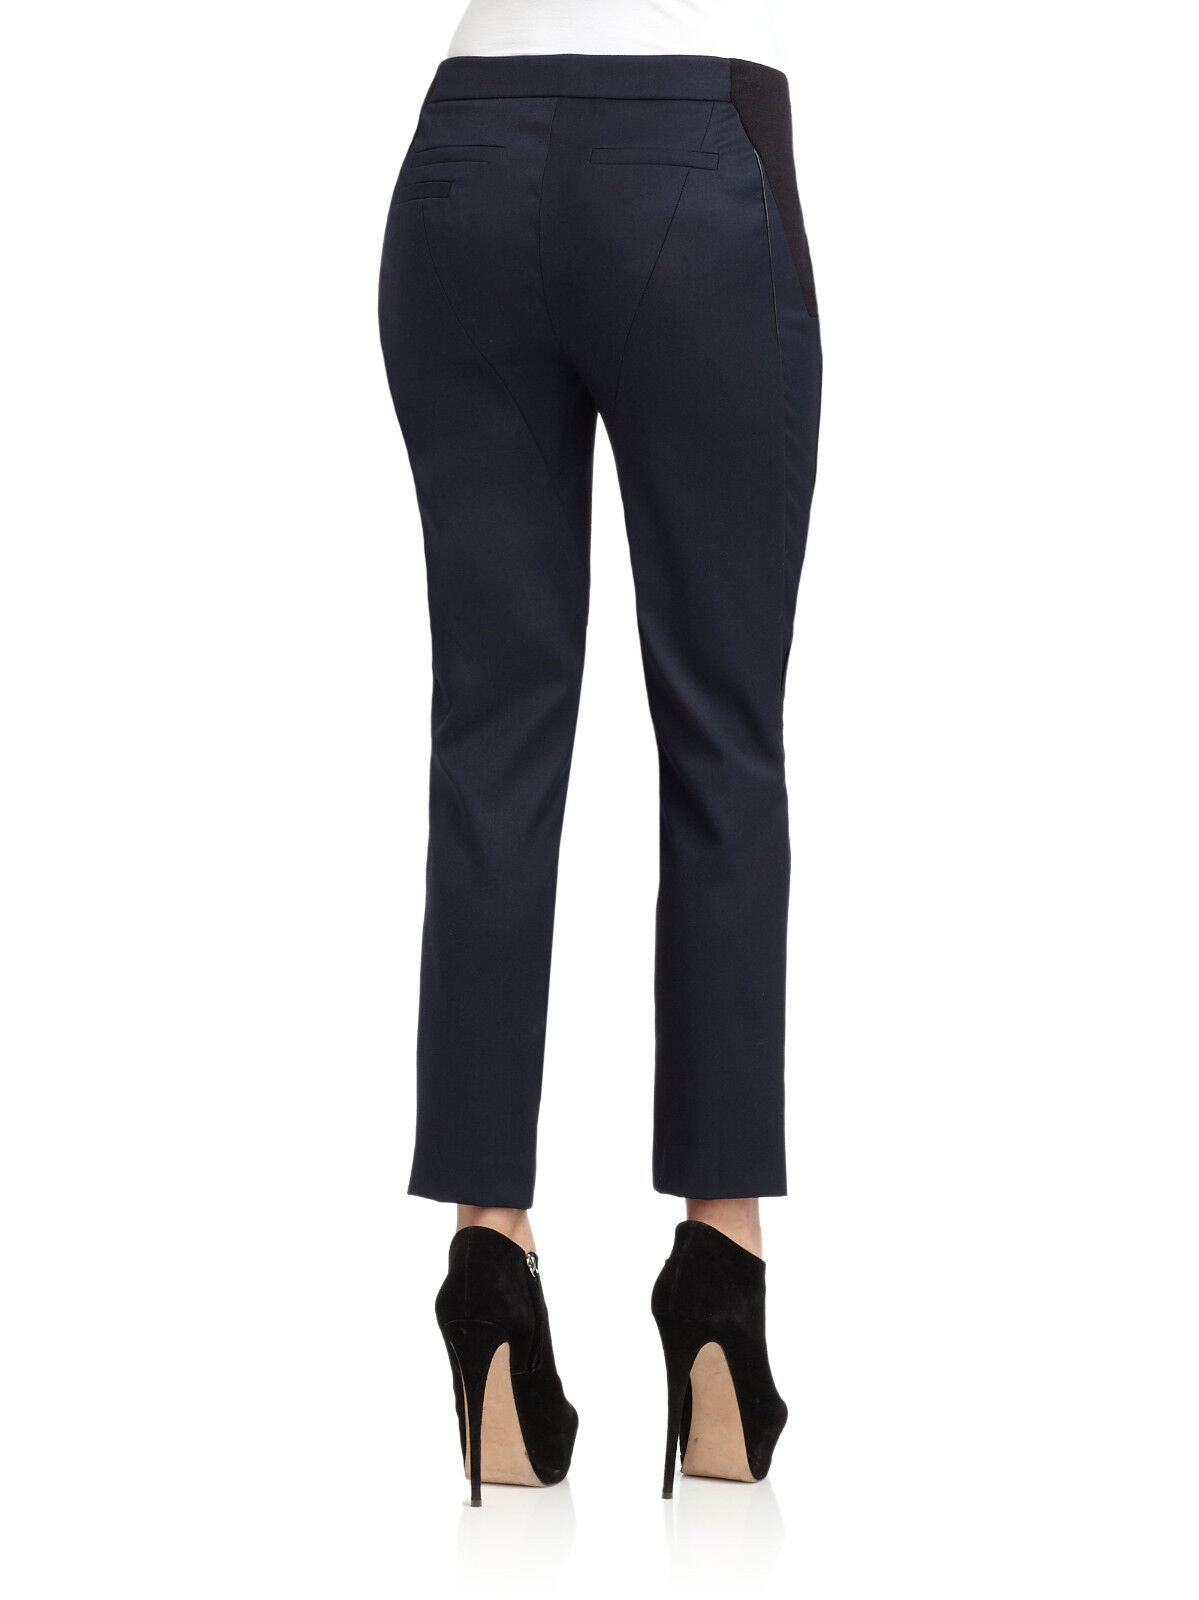 New Cut 25 by Yigal Azrouel Leather Trim Navy bluee Gabardine pants trousers 10